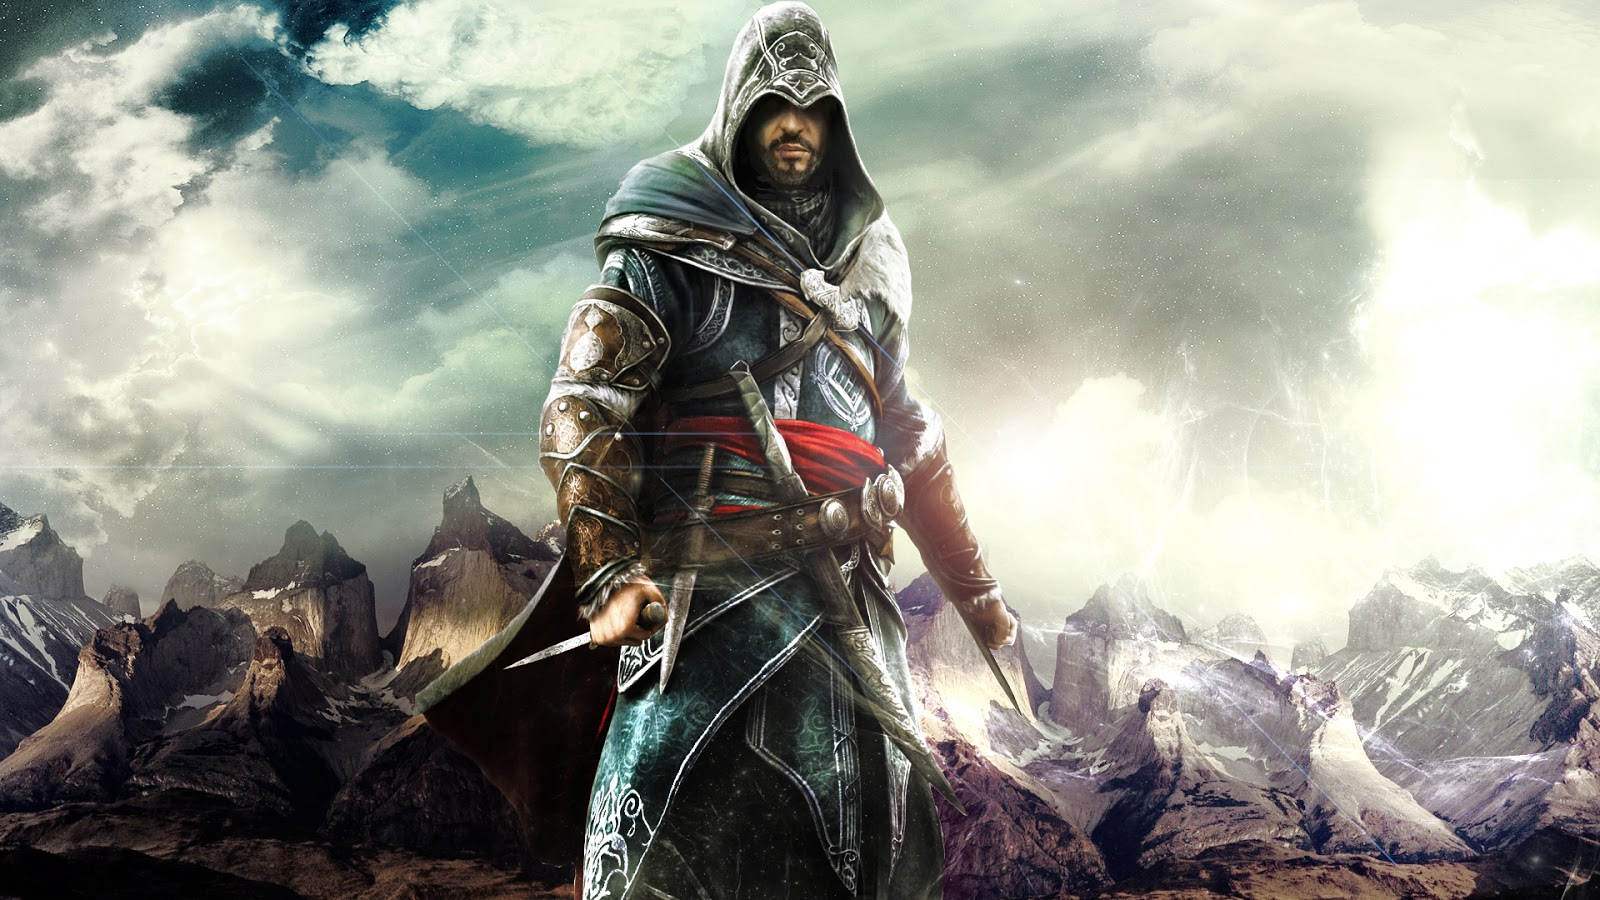 Game Wallpapers Assassins Creed   Game Wallpaper 1600x900